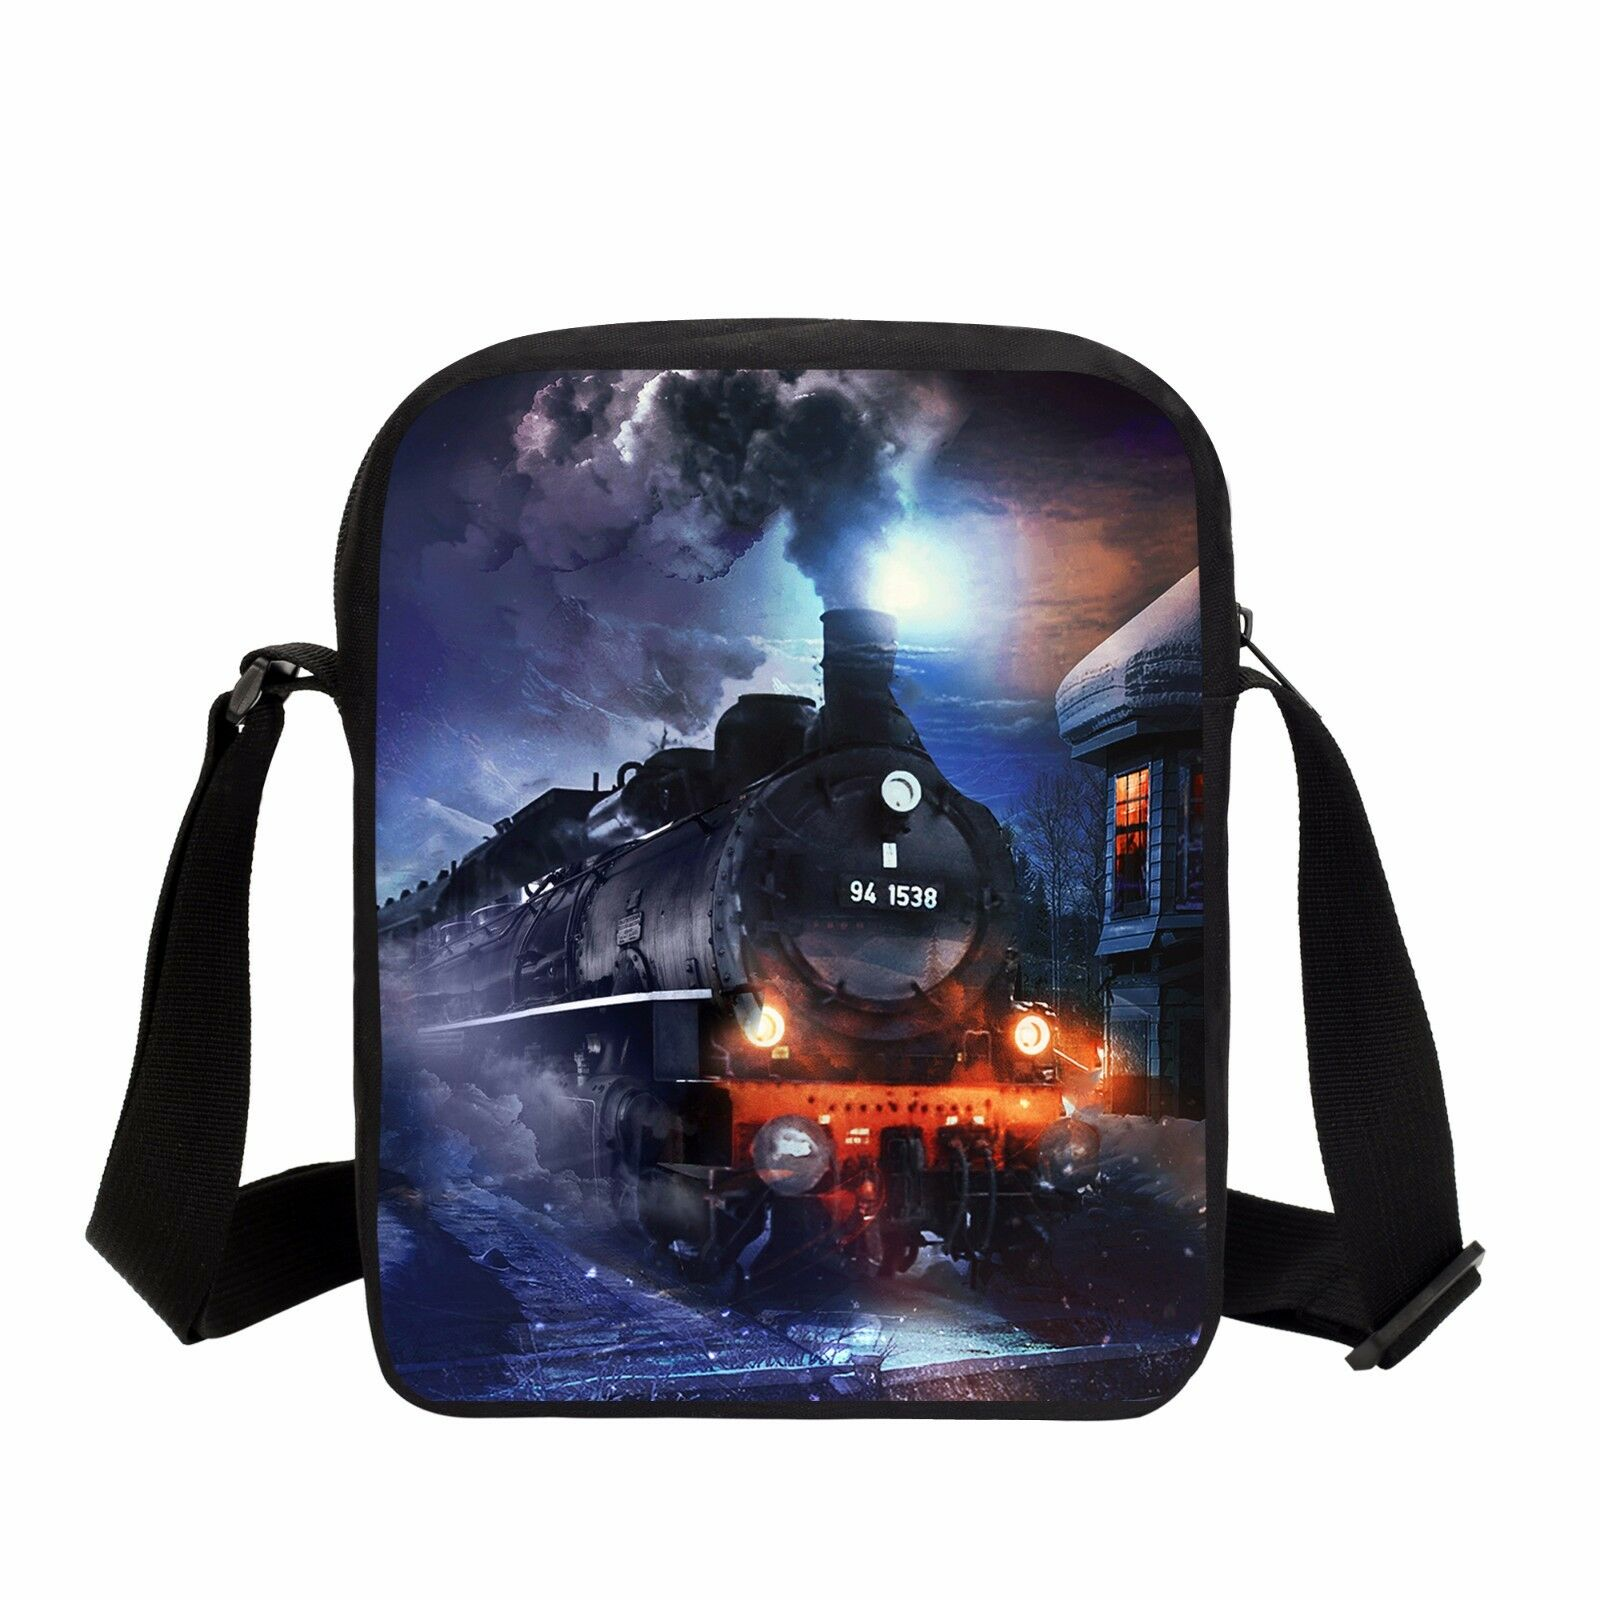 Steam Train Pattern Satchel Boys Messenger Bag Kids Everyday Shoulder Wallet